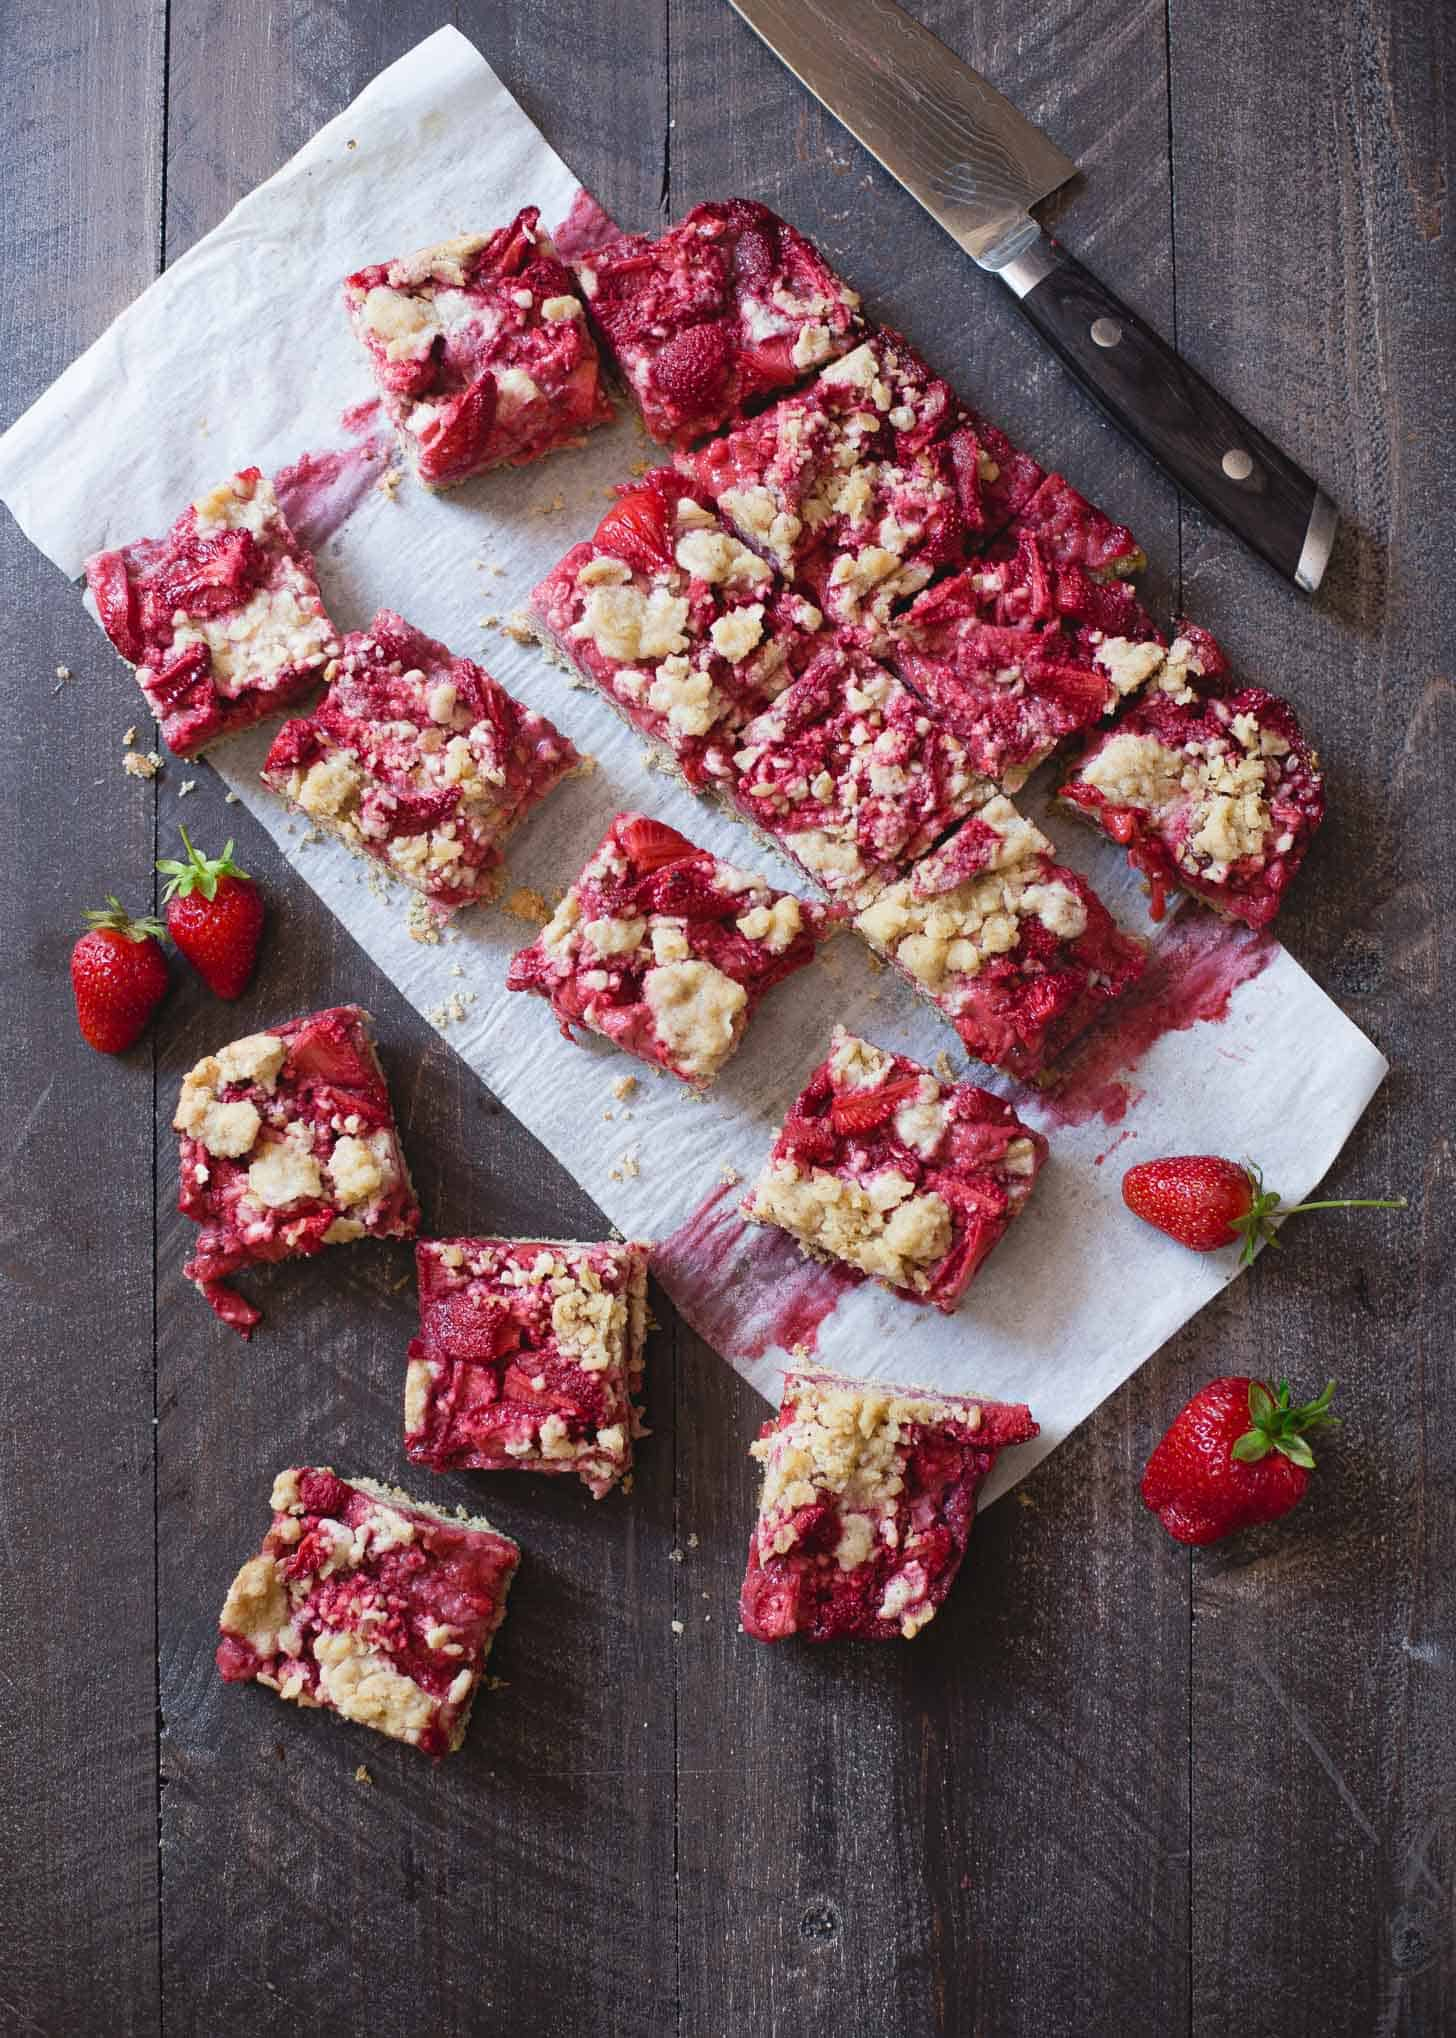 Strawberry Oat Streusel Bars on a wooden table